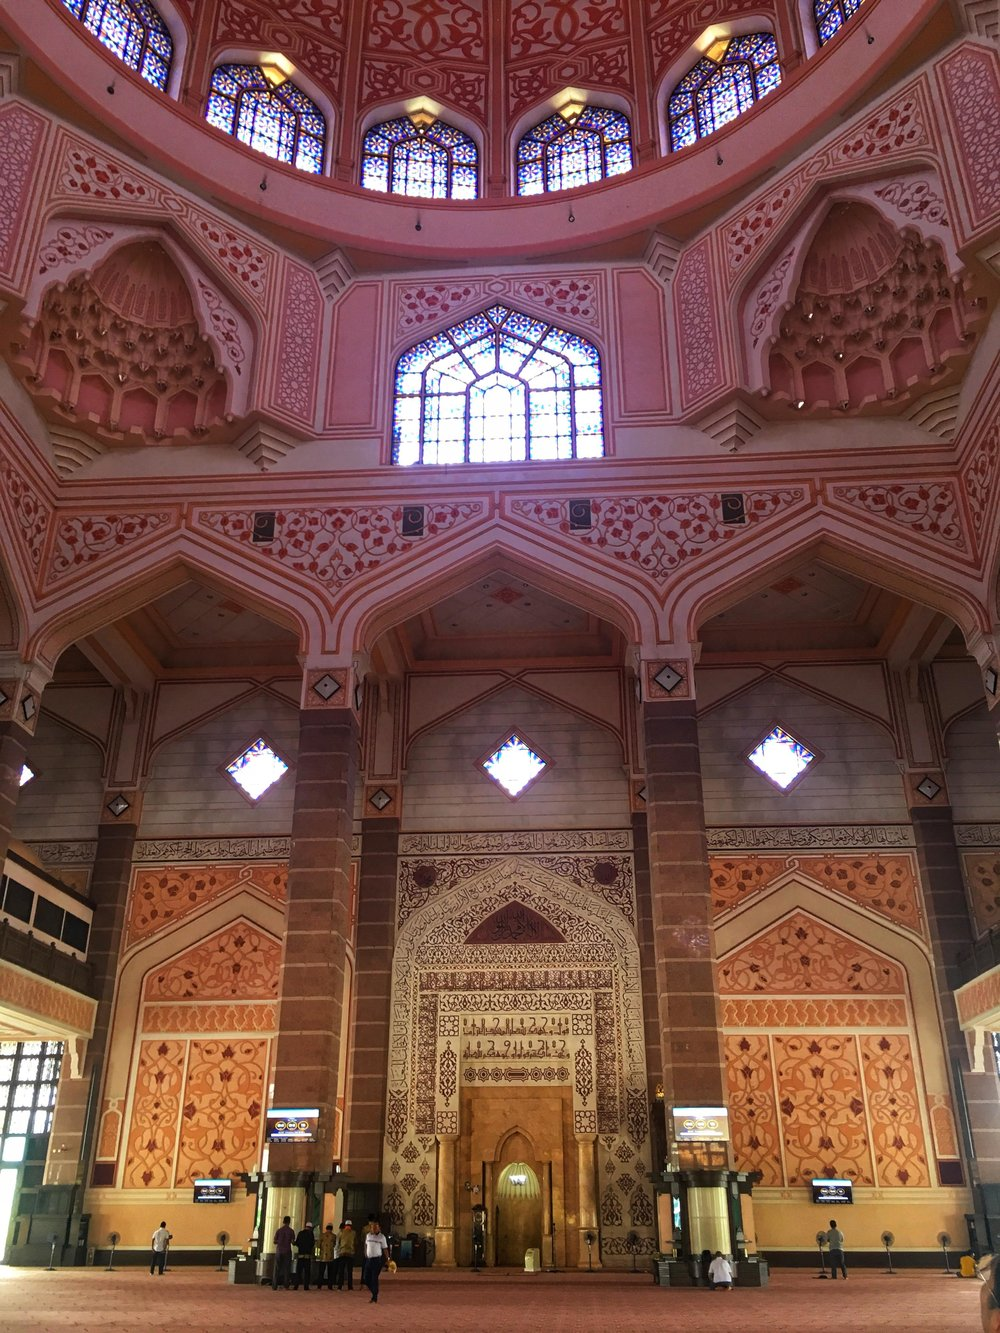 the interior of the Pink Mosque in Putrajaya